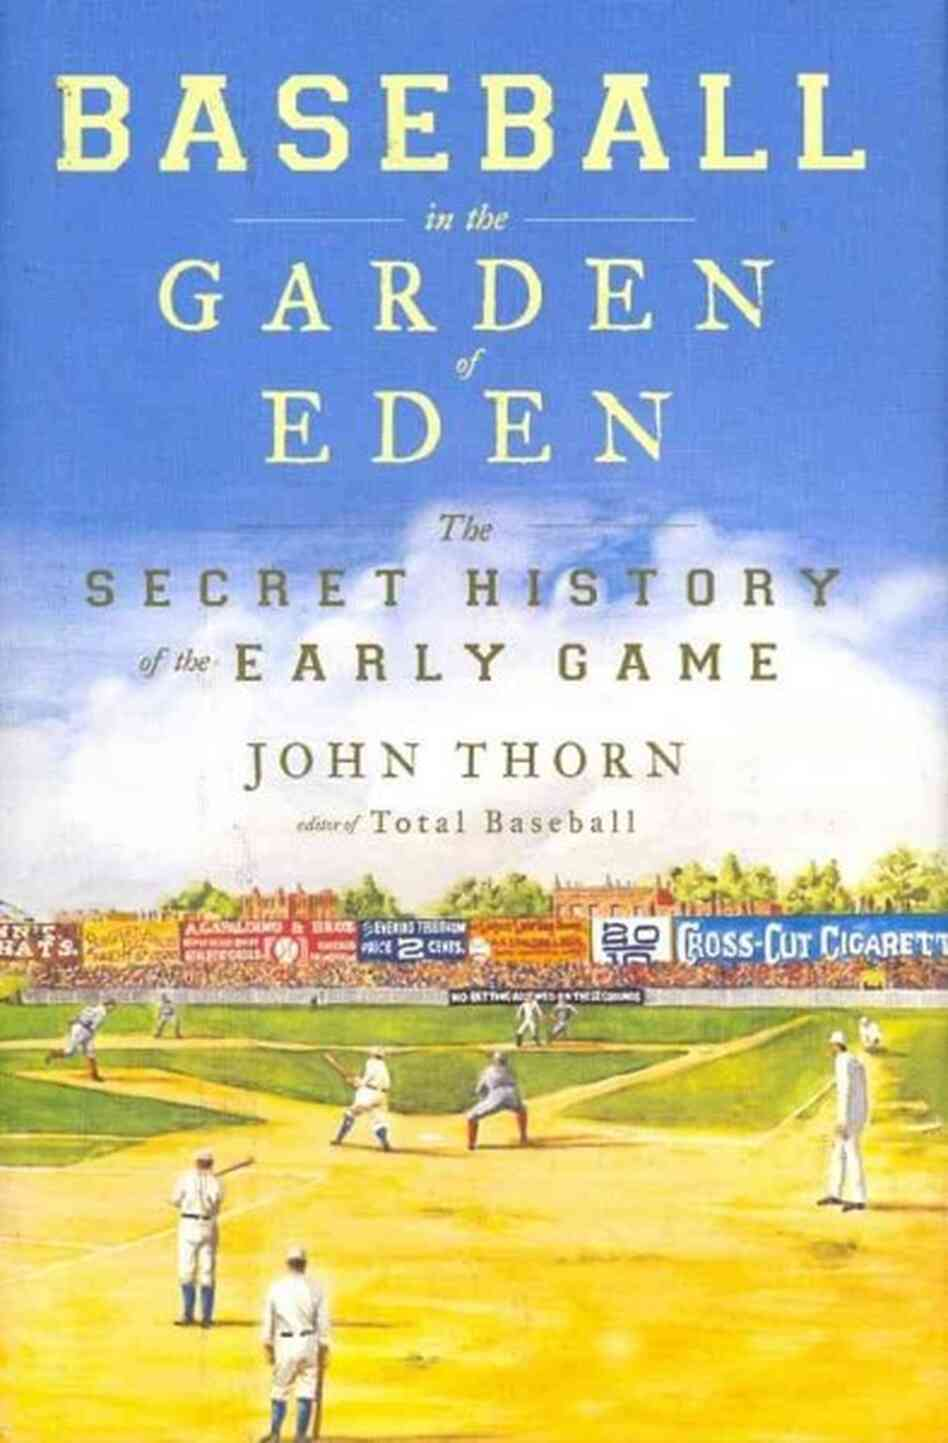 hamlet garden of eden Garden archetype essaysan save your essays here so the garden archetype is characterized as a place such as the garden of eden in which man lives in peace.